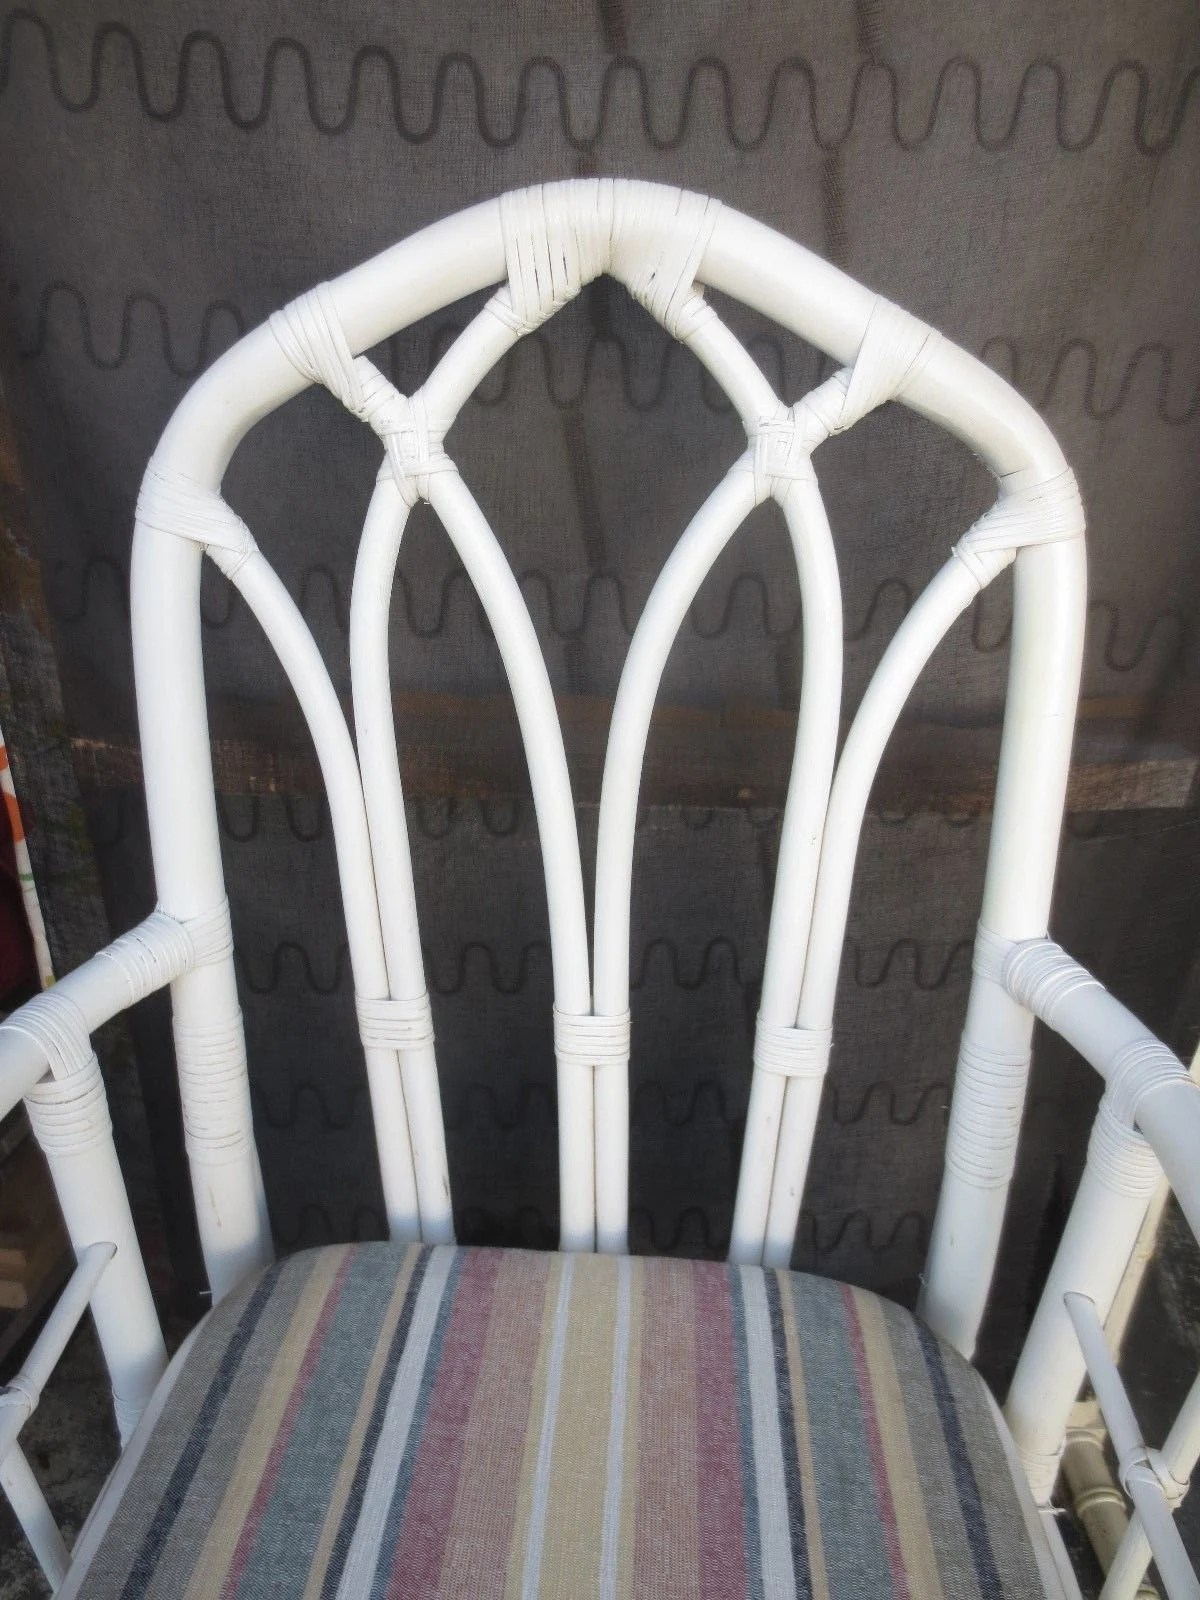 Bamboo Chairs Pair Bamboo Chairs Cathedral Mcguire Sty Hollywood Regency 2 Rattan Palm Beach Captain Arms Coastal Cottage Wicker Arms Shabby Chic Dining